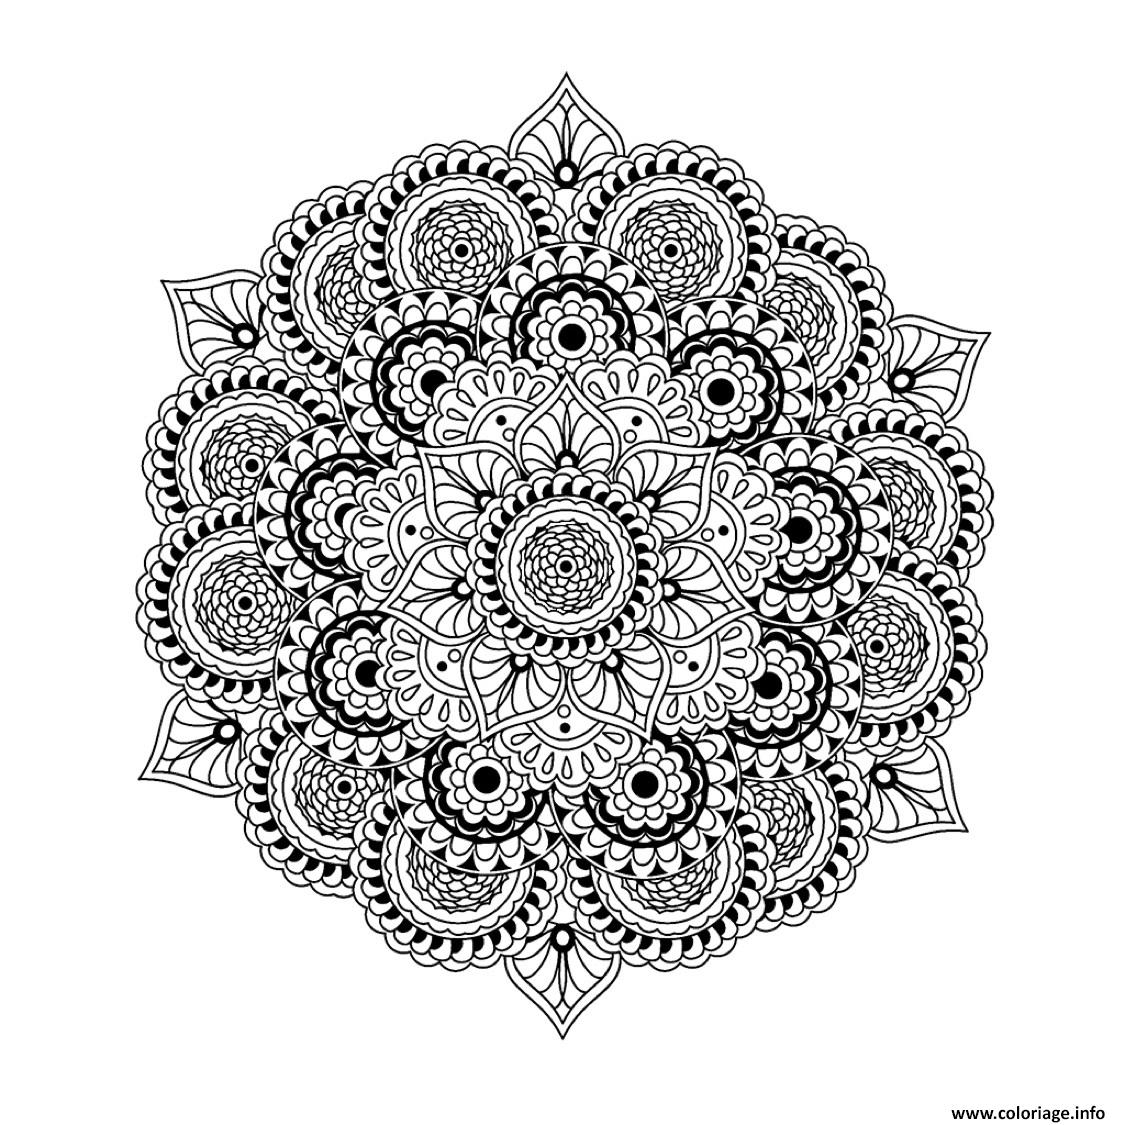 mandala plexe difficile pour adulte art therapie coloriage dessin